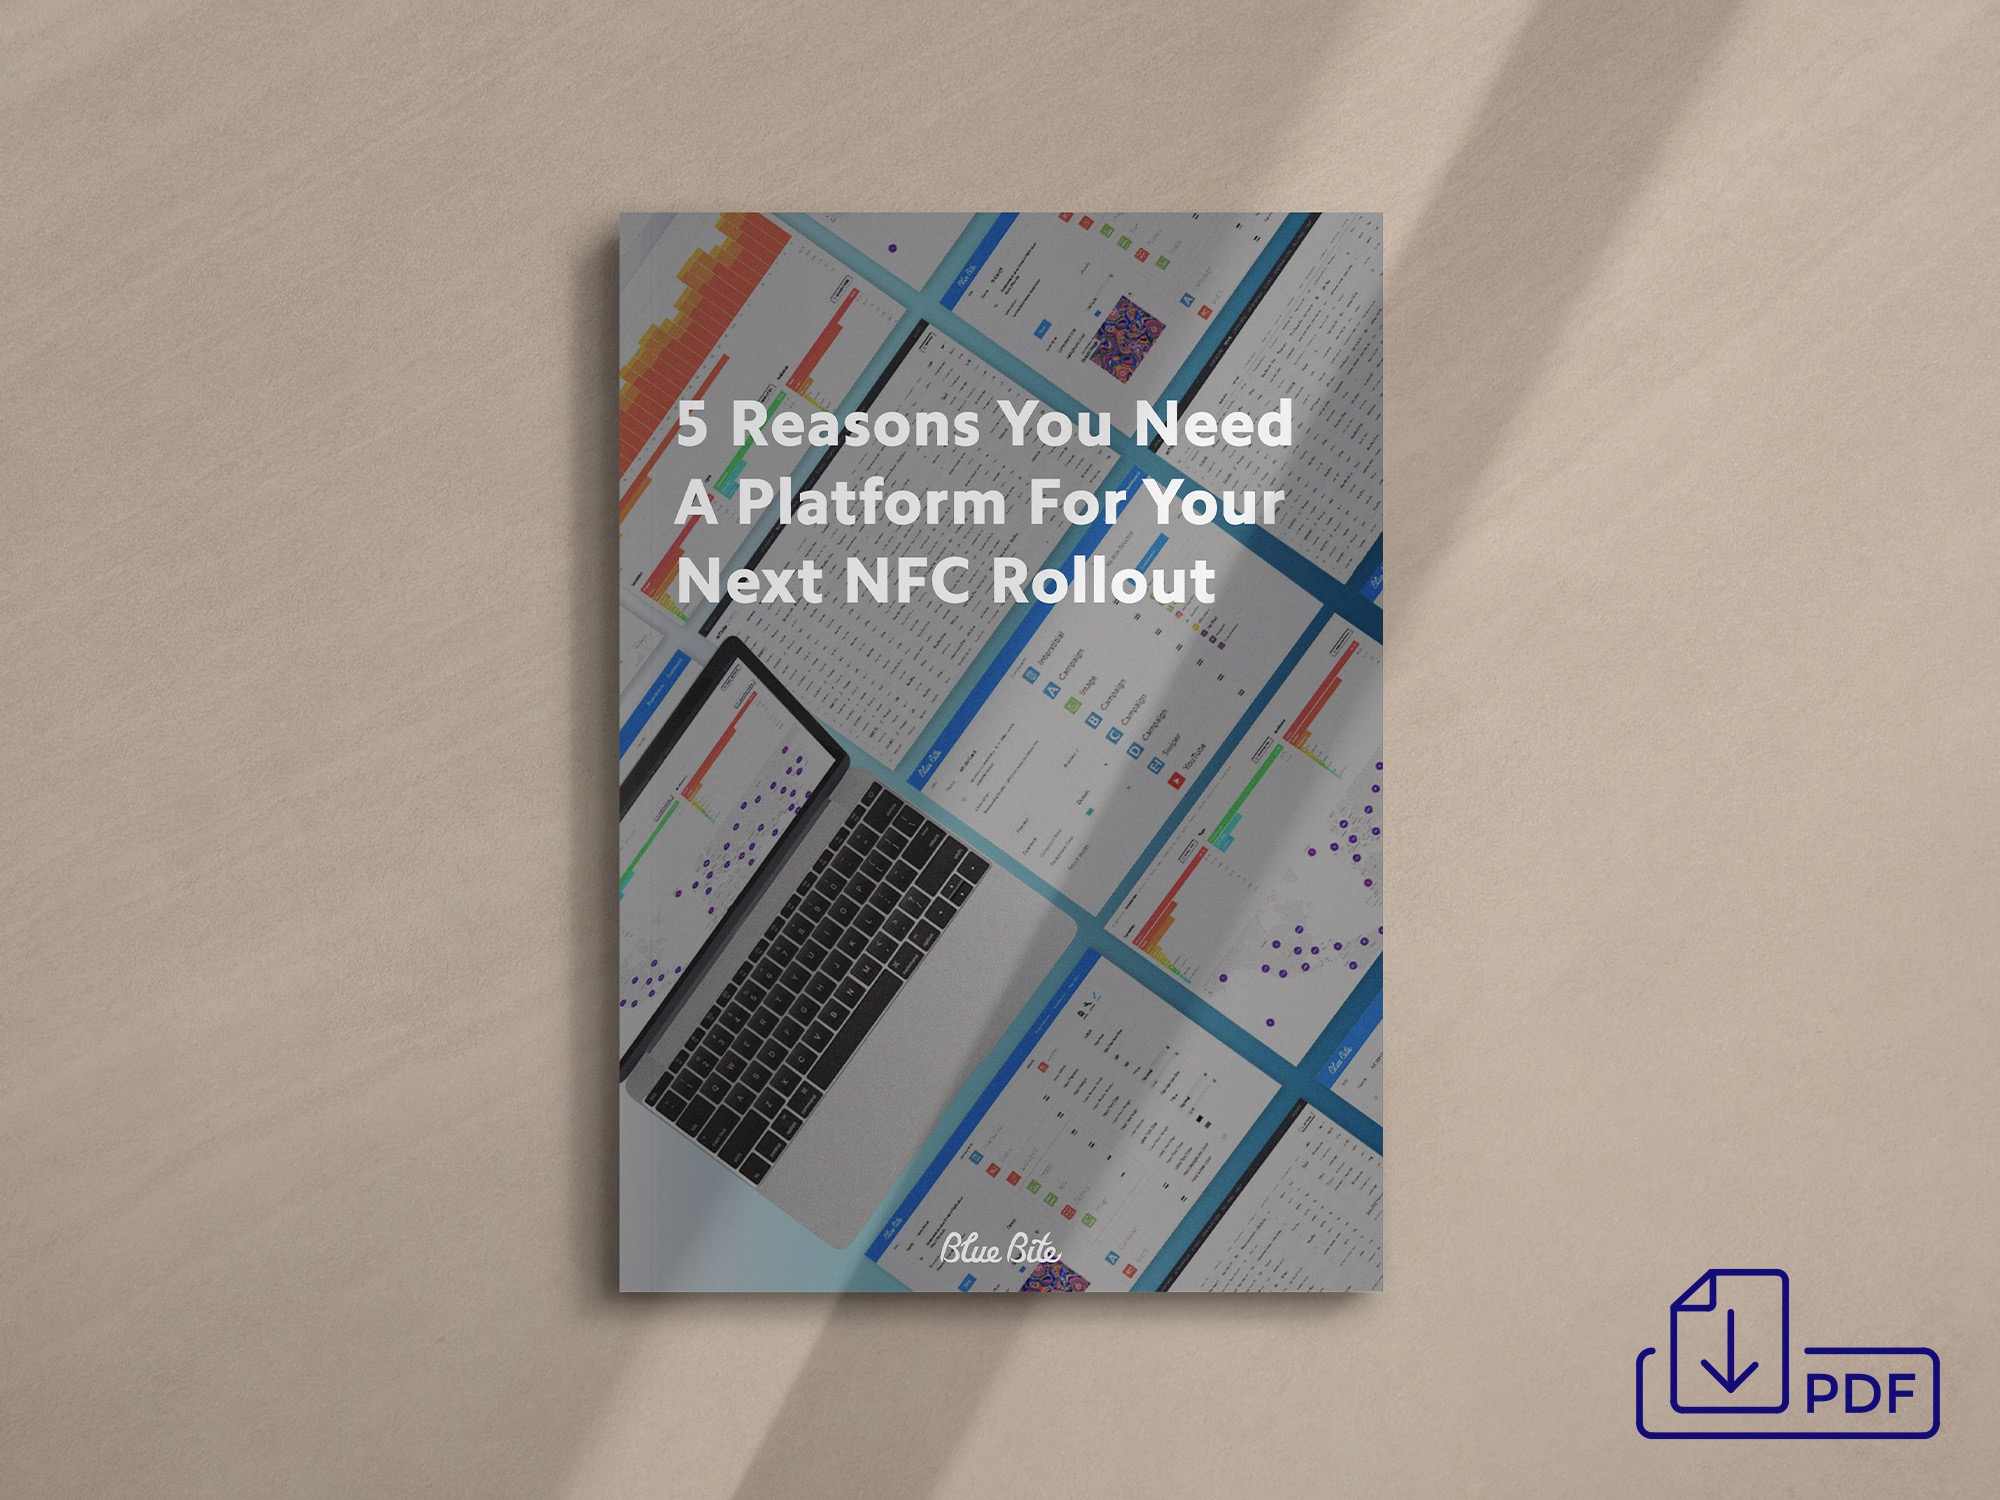 Get the 5 Reasons You Need A Platform For Your Next NFC Rollout PDF